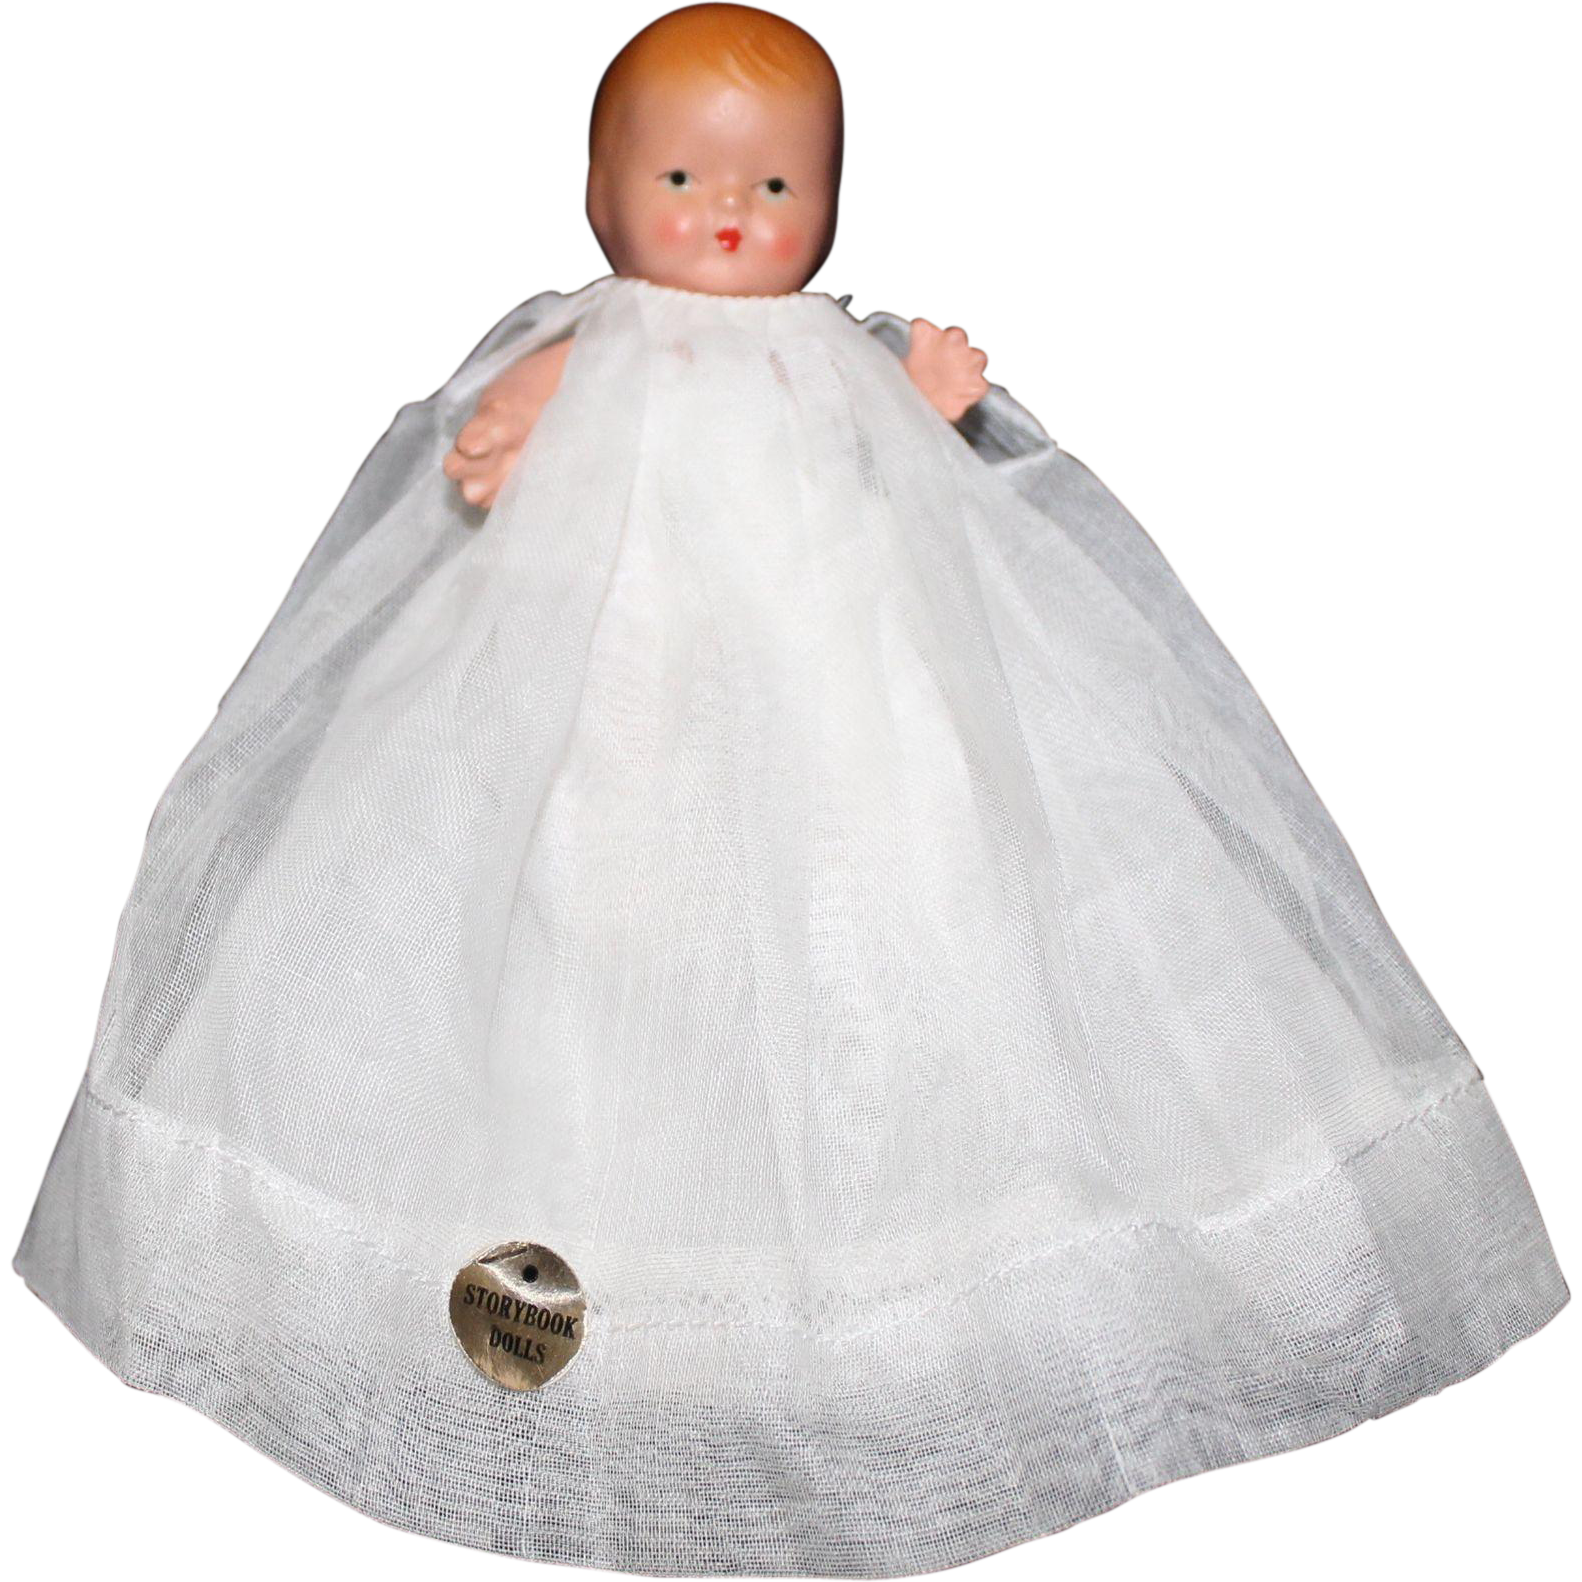 Nancy ann storybook bisque baby with starfish hands from tstoltzfus on